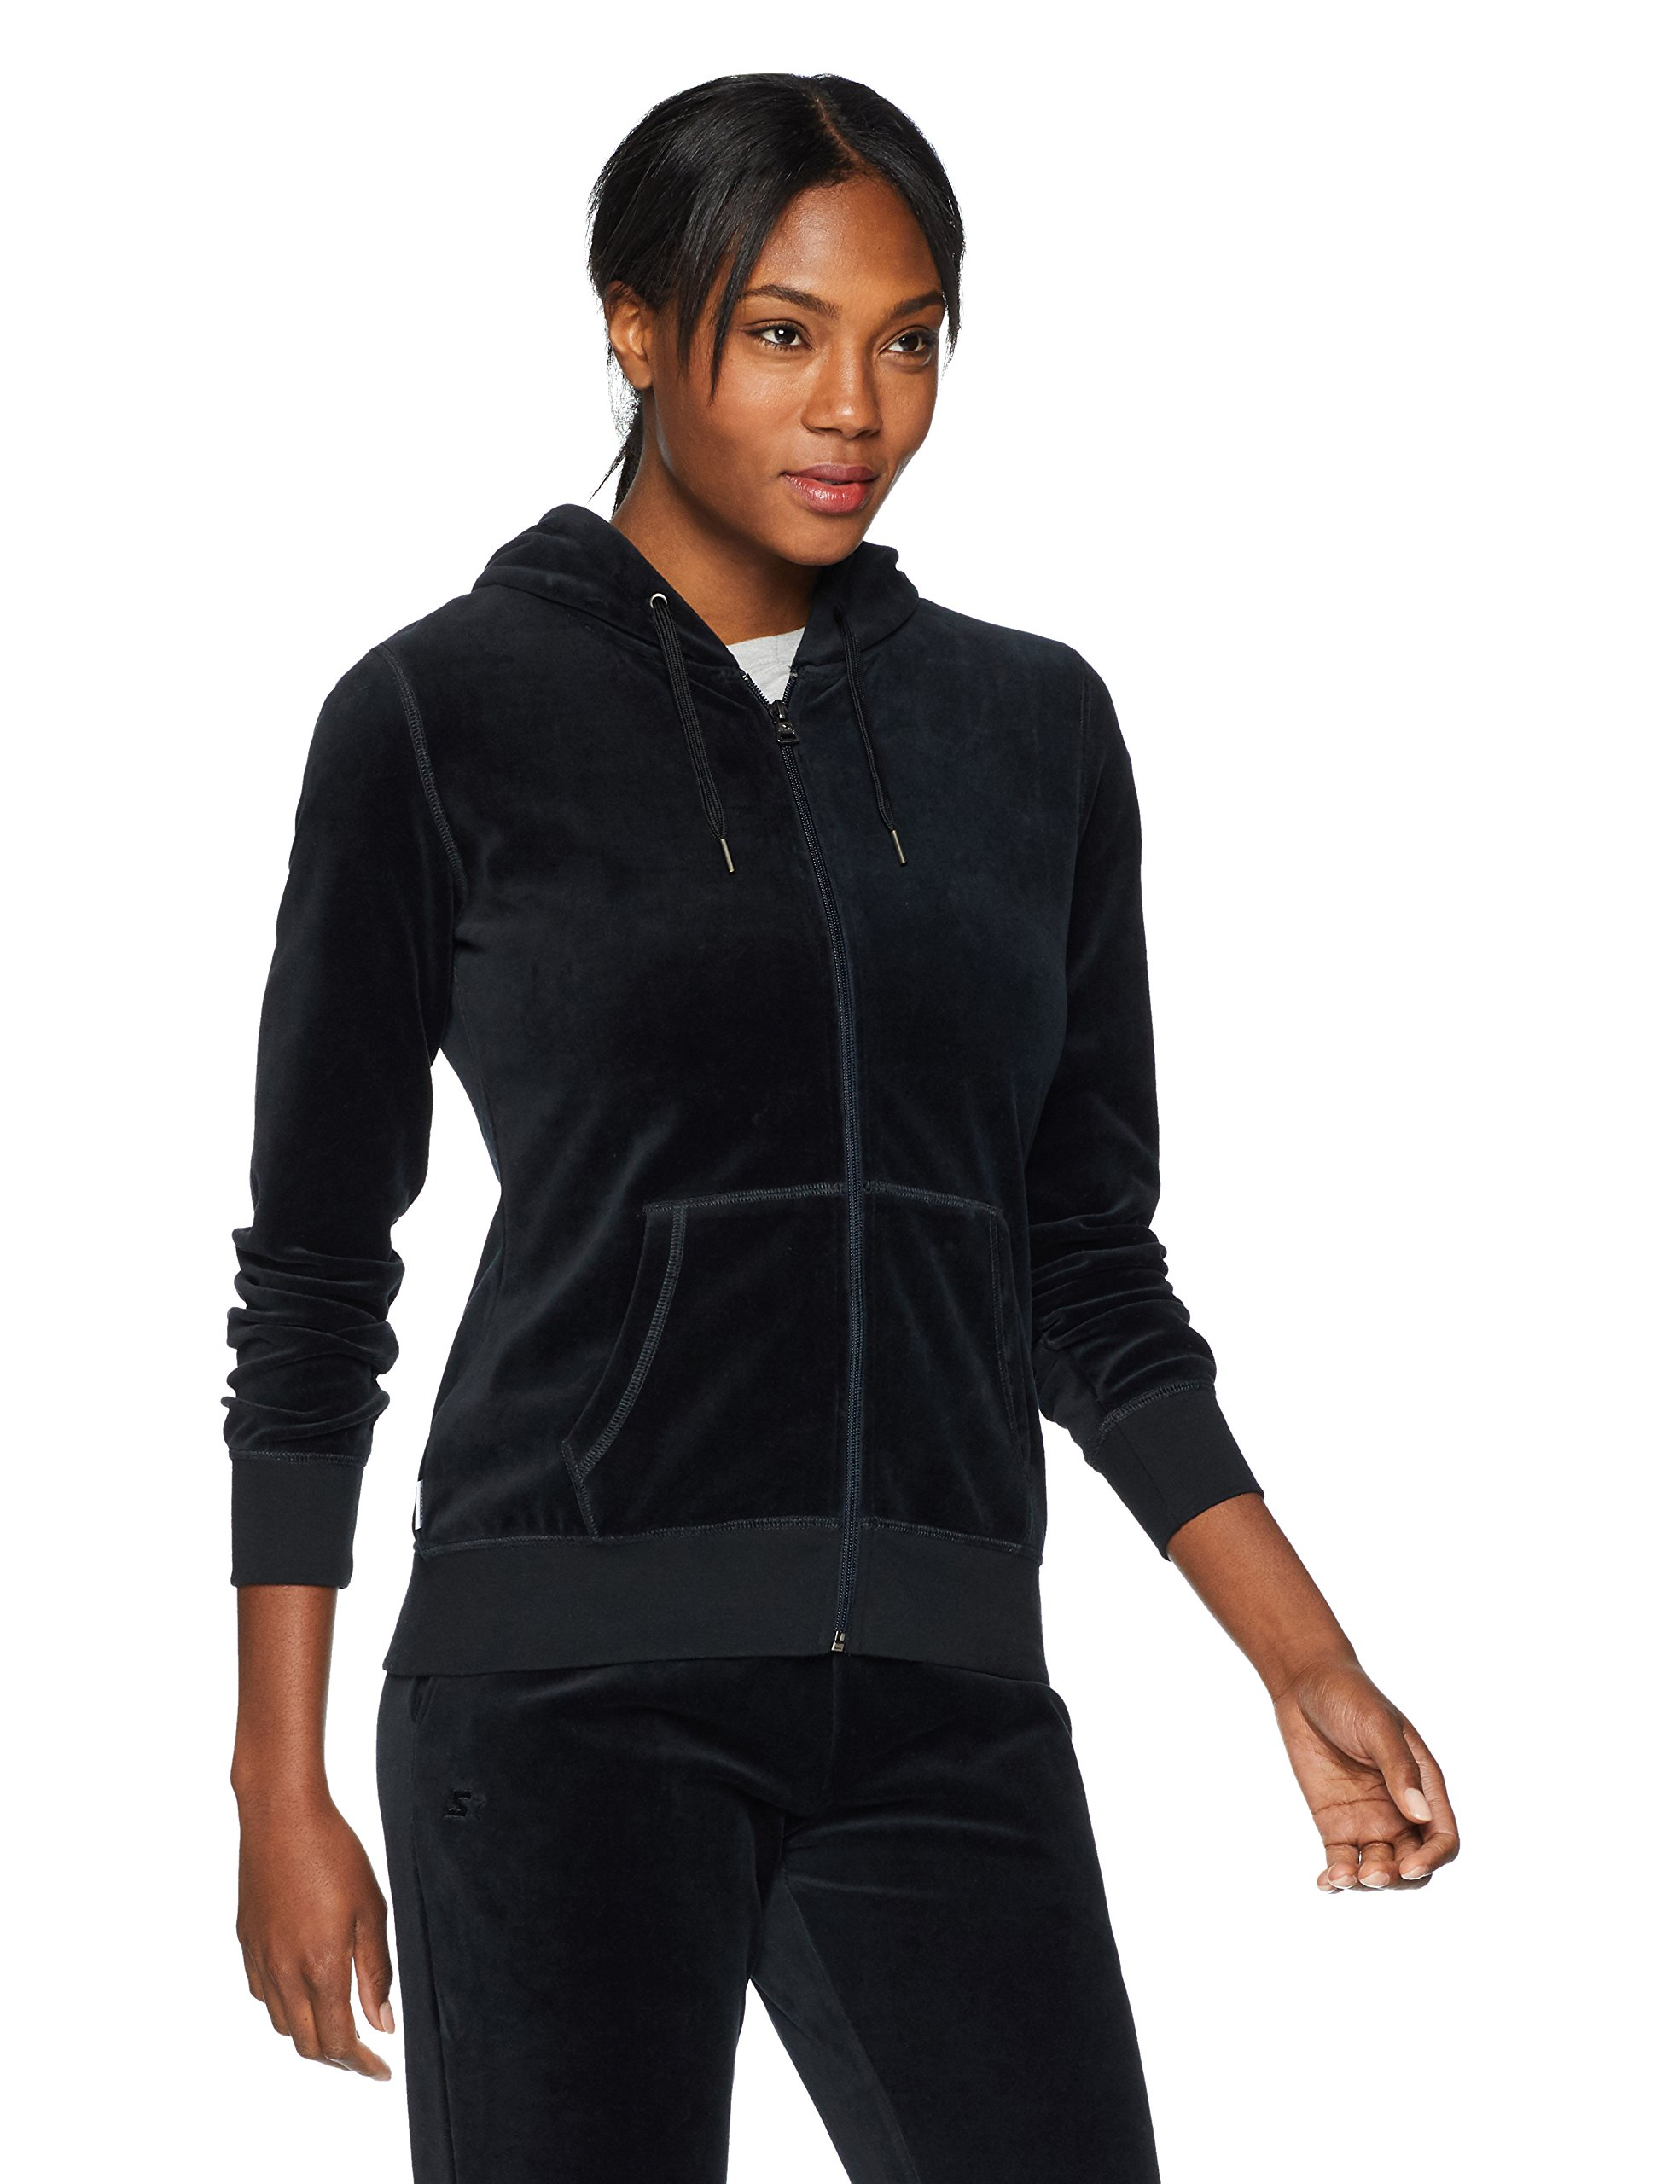 Starter Women's Velour Track Jacket with Hood, Prime Exclusive, Black, Extra Large